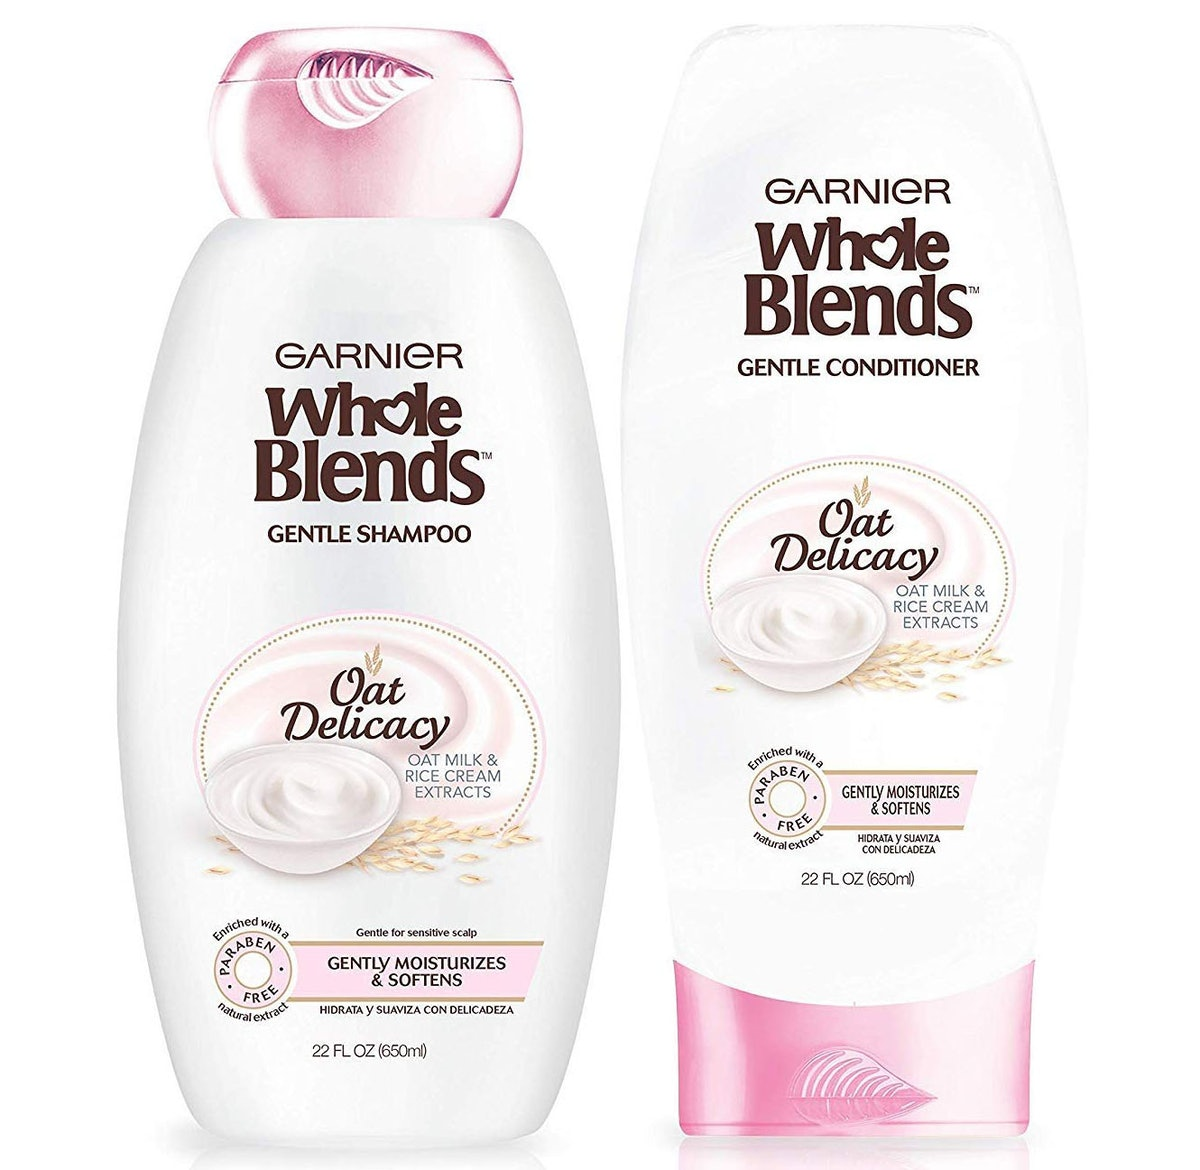 Garnier Whole Blends Oat Delicacy Moisturizing Shampoo and Conditioner